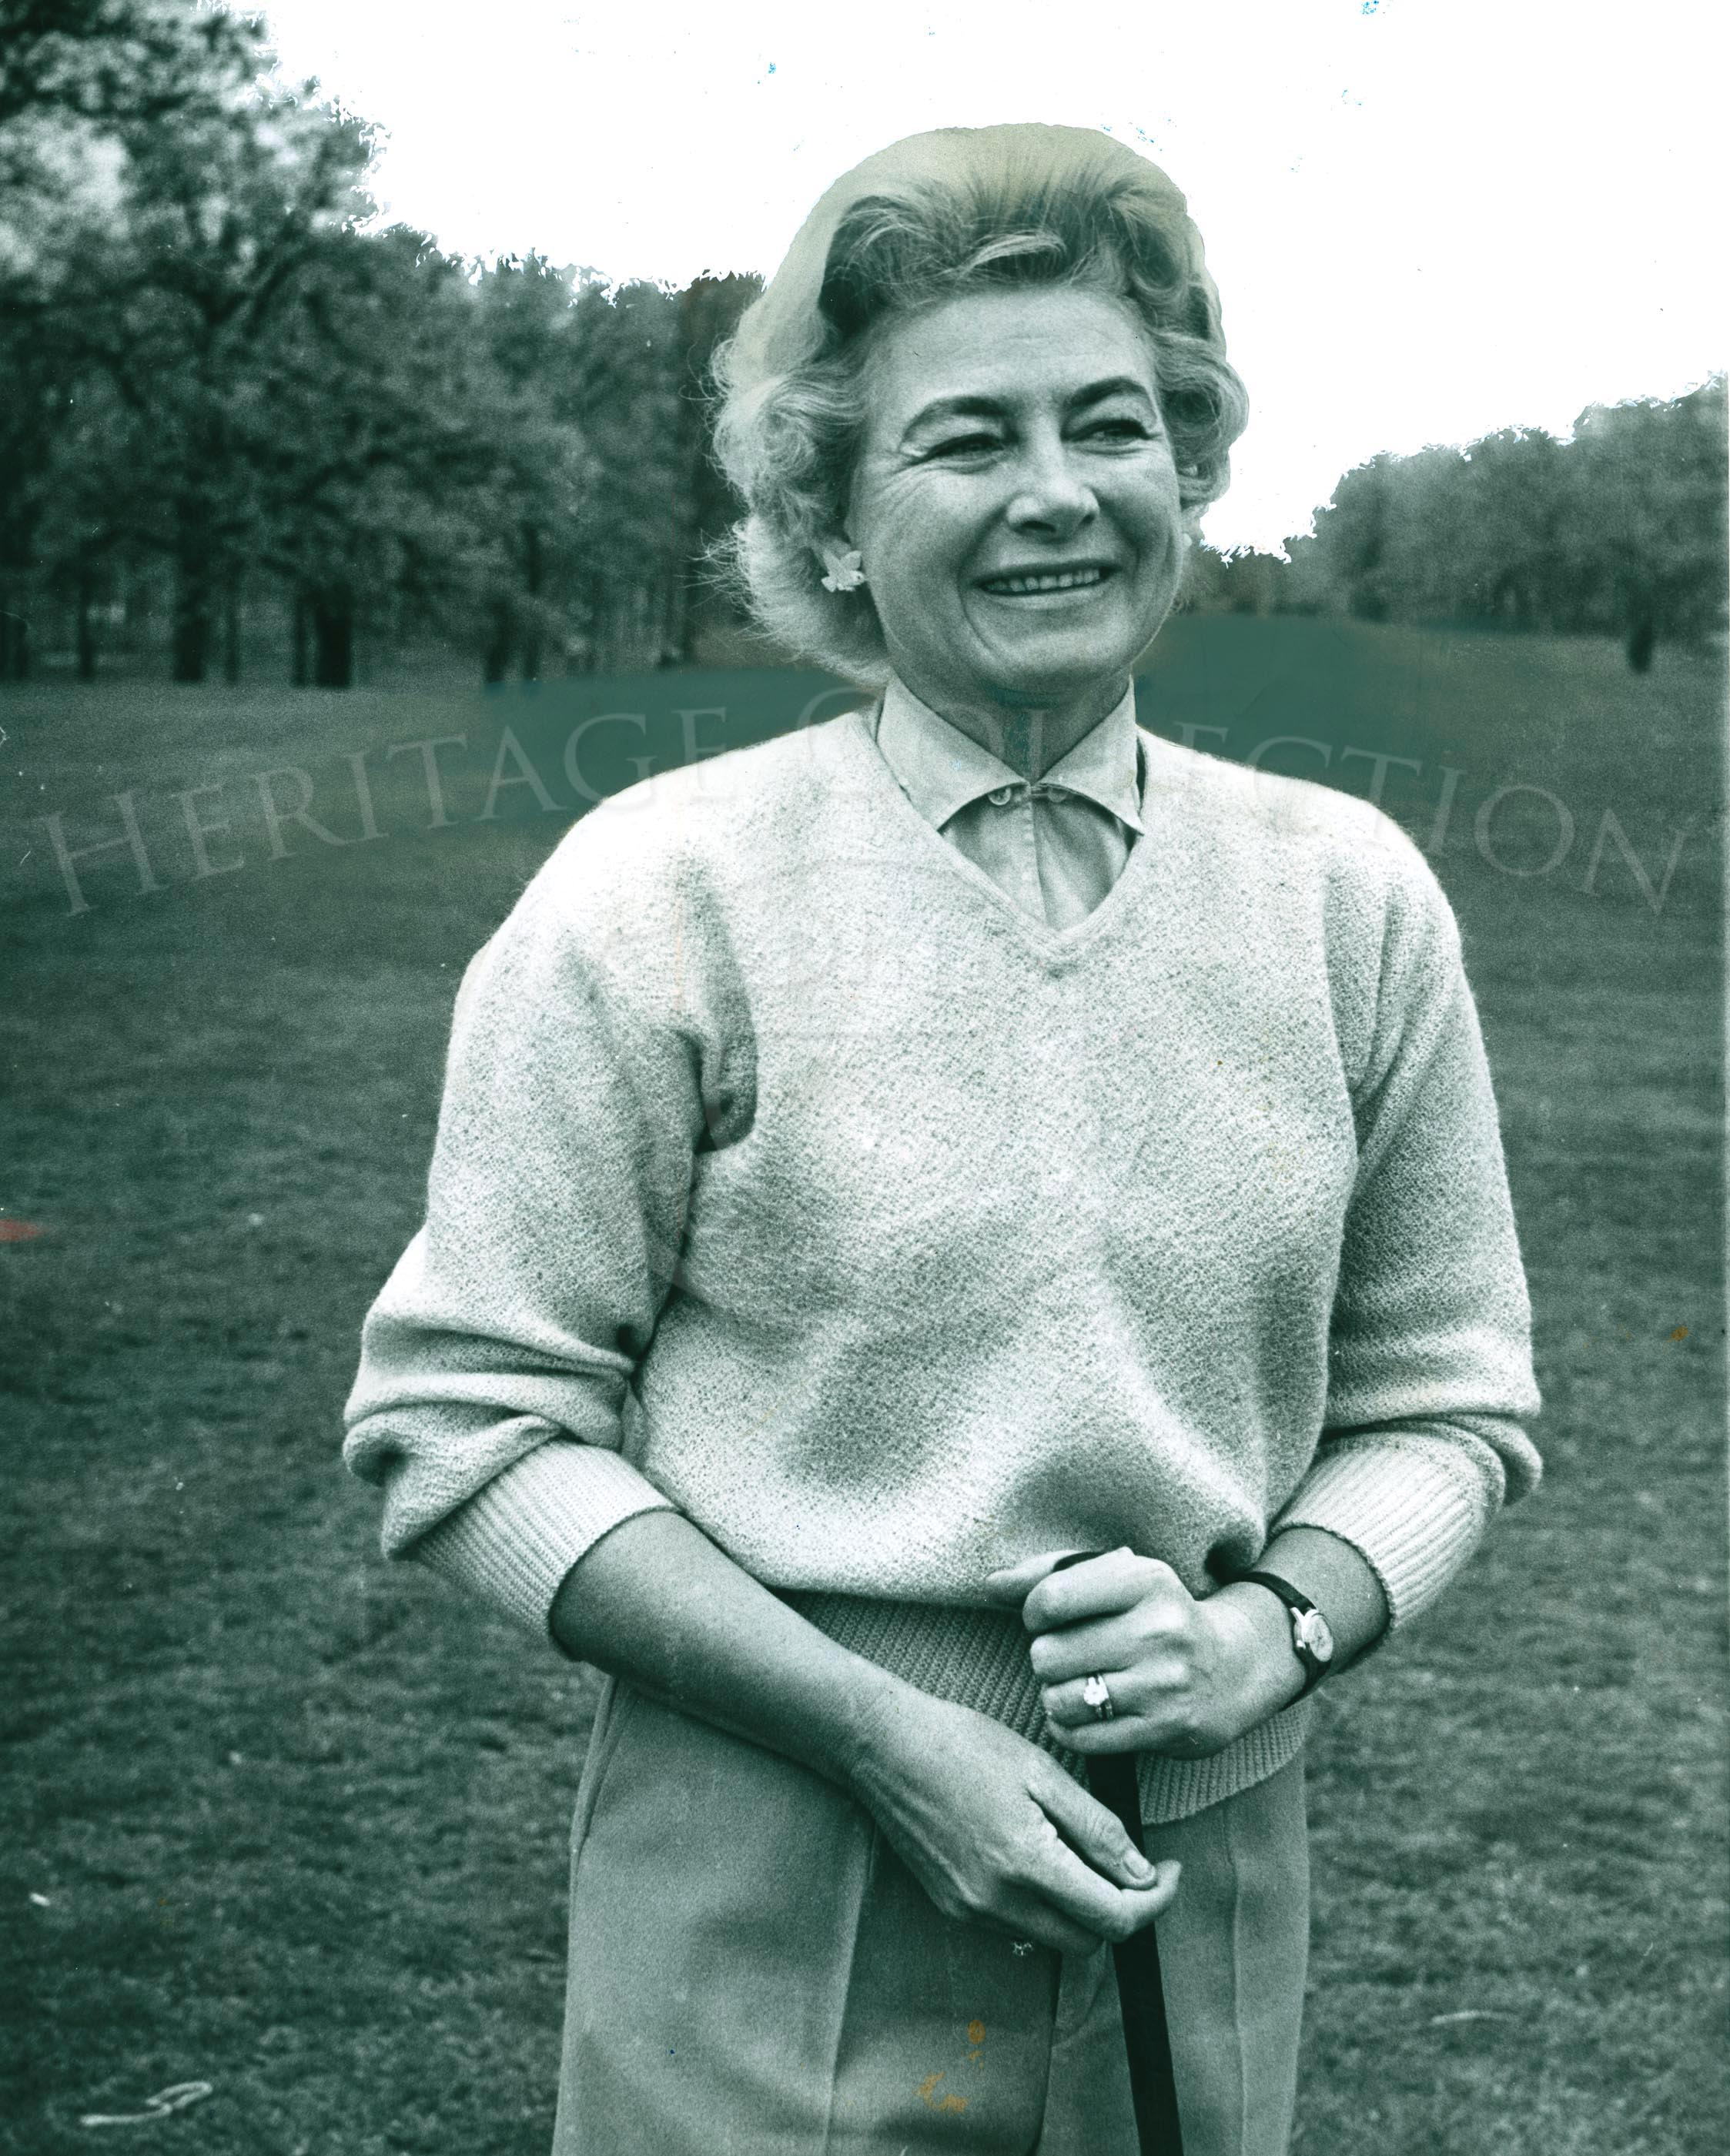 Photo of Adeline Potter, amazing women golfer and swim athlete. Women's Champion 1944. 8 x 10 Black and White, sky is whited out.